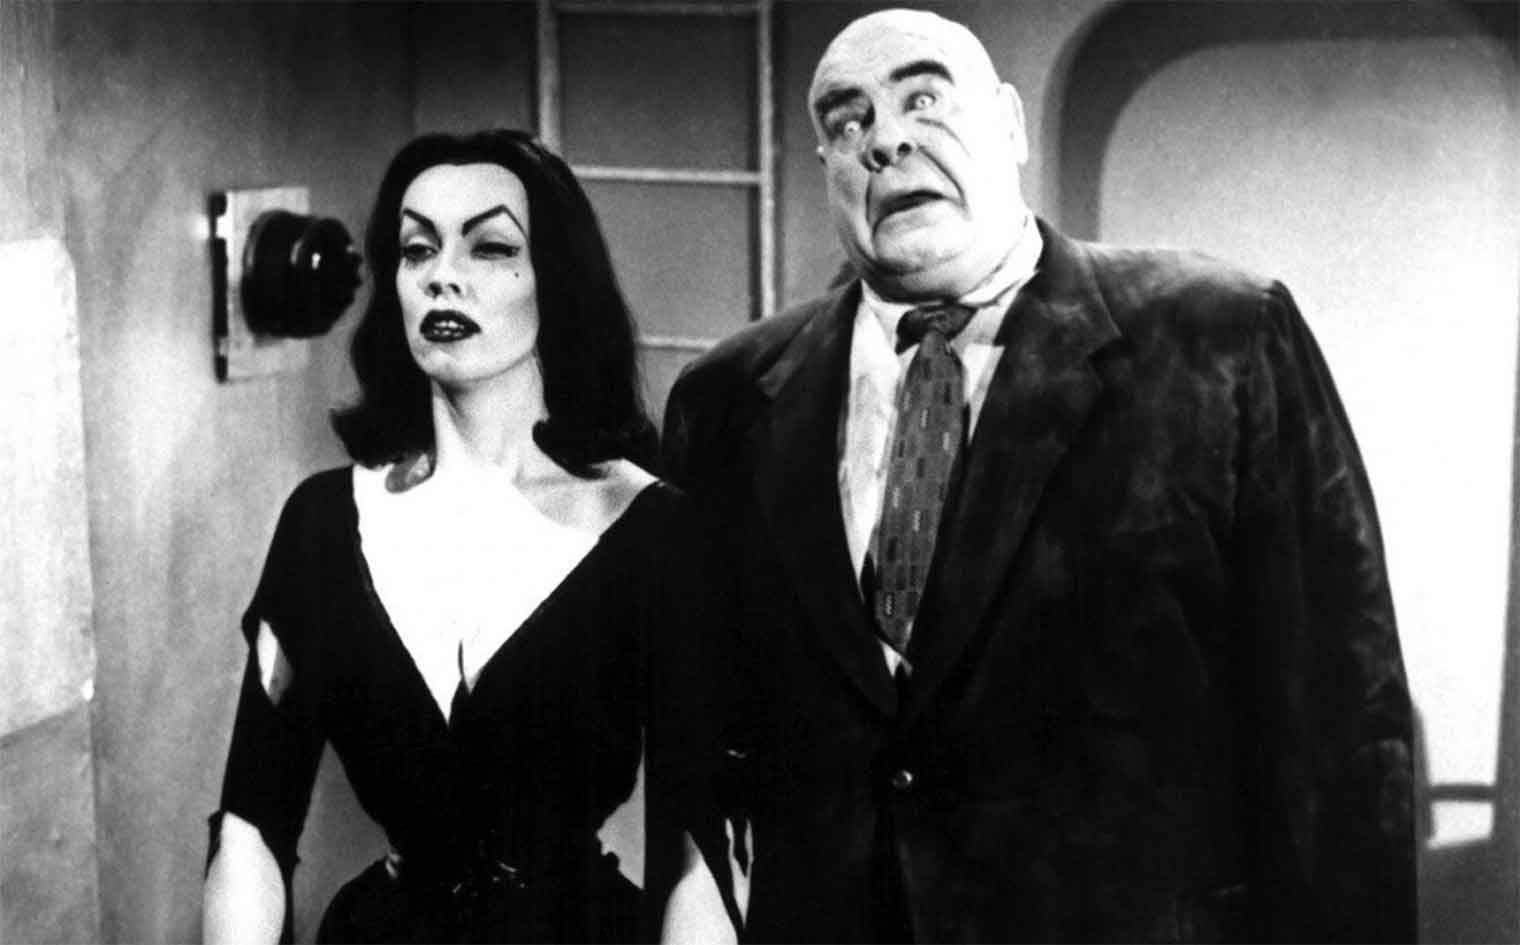 ED WOOD & PLAN 9 FROM OUTER SPACE